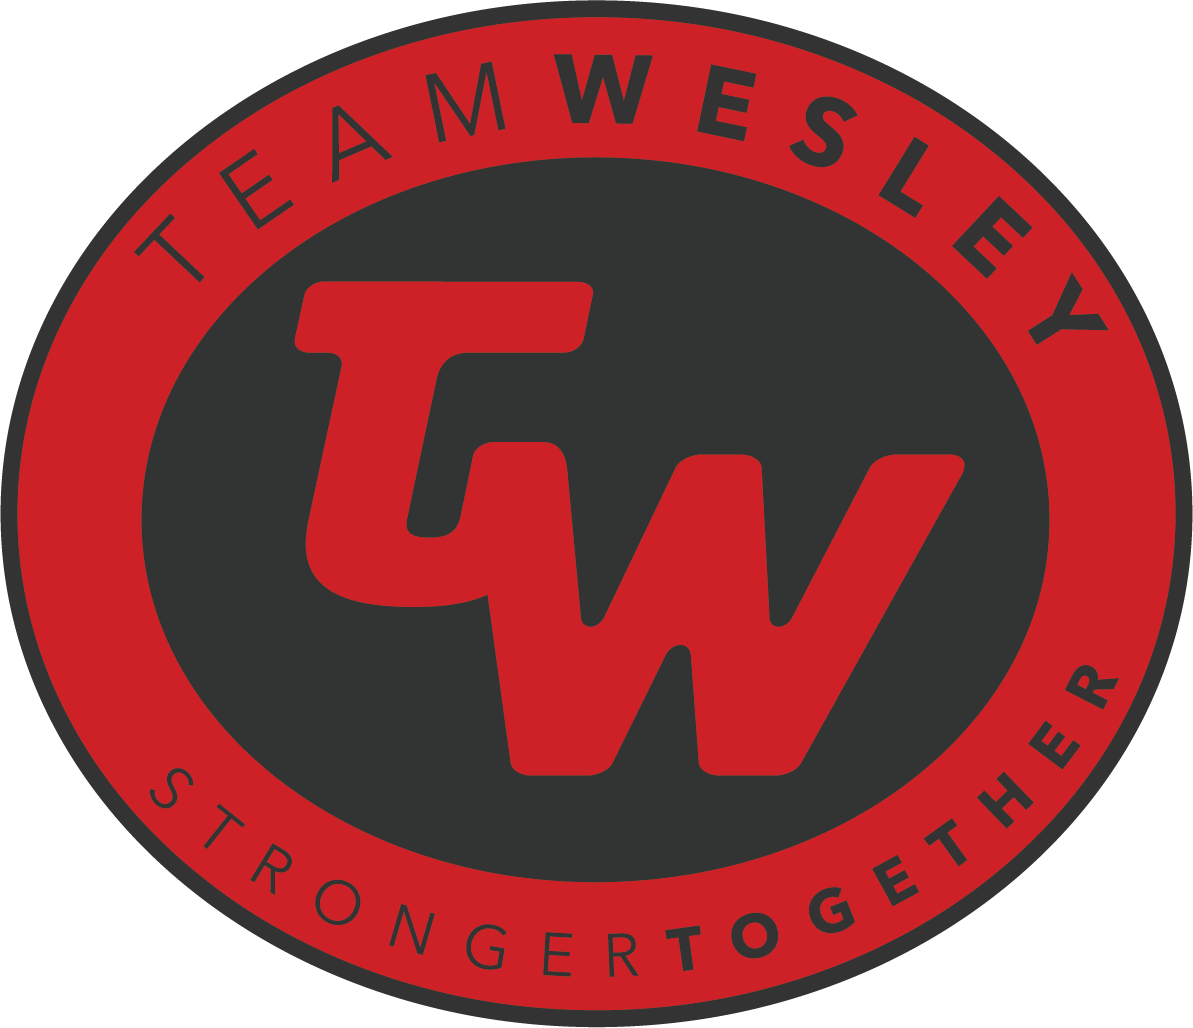 teamwesley_oval_red.png